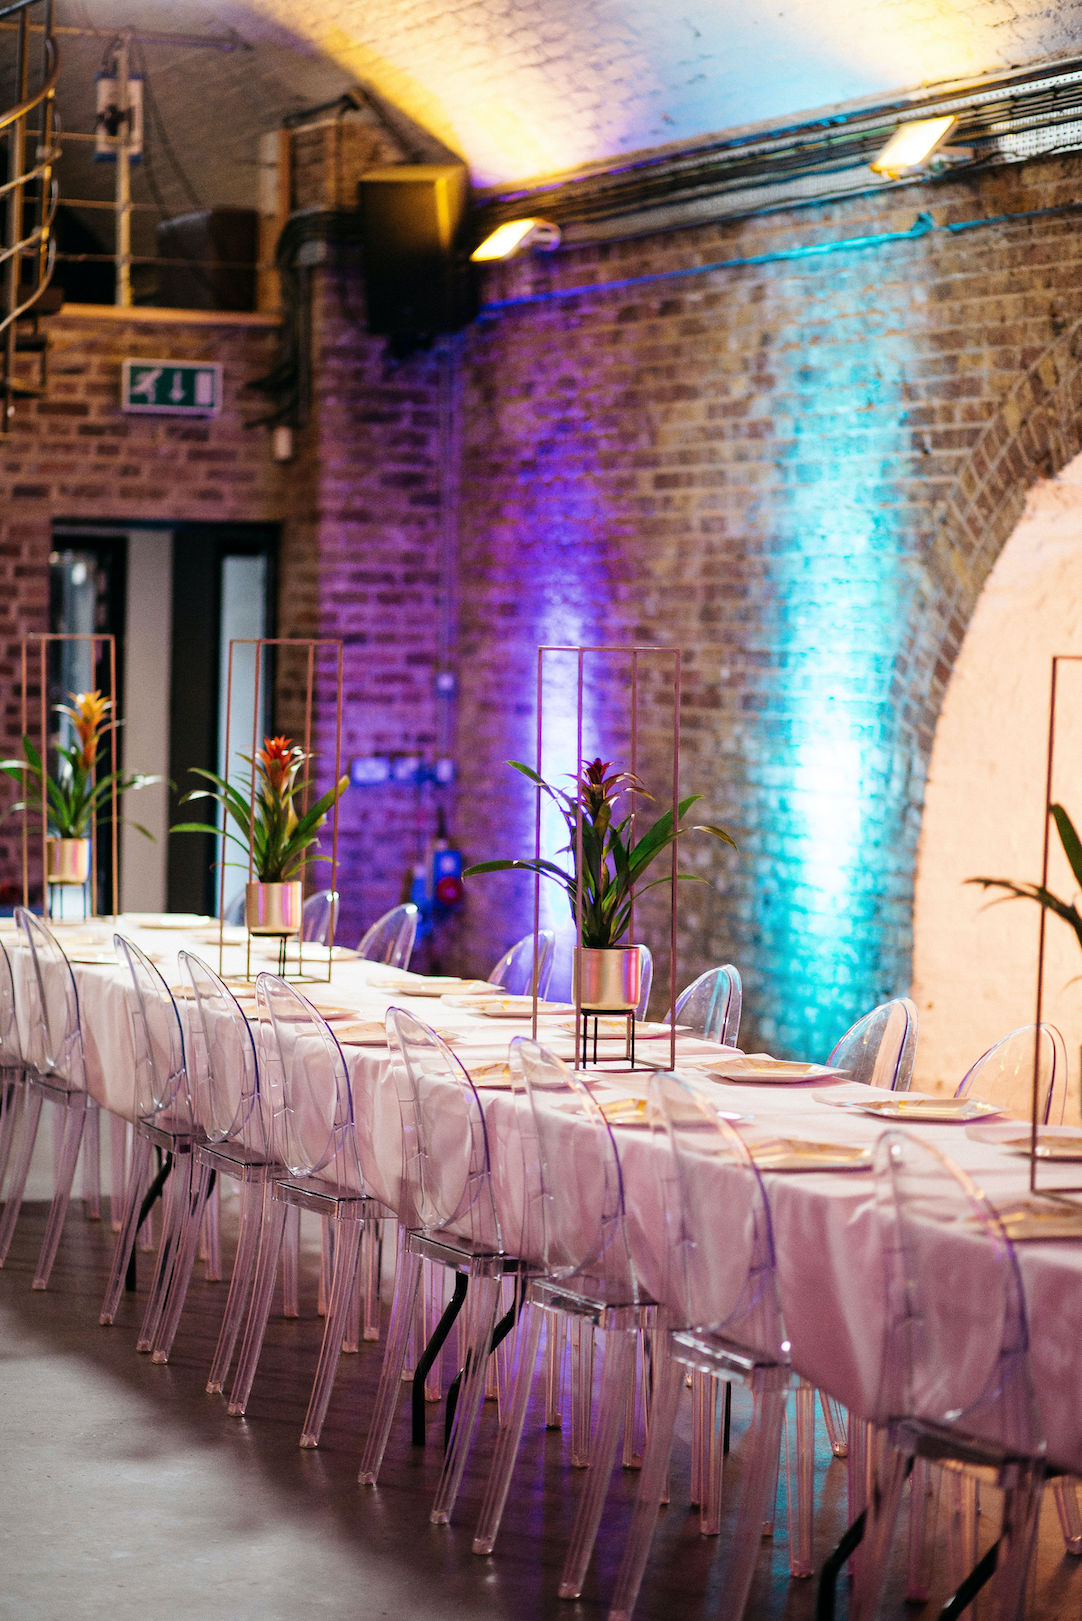 Blank canvas Shoreditch Studios venue wedding setup